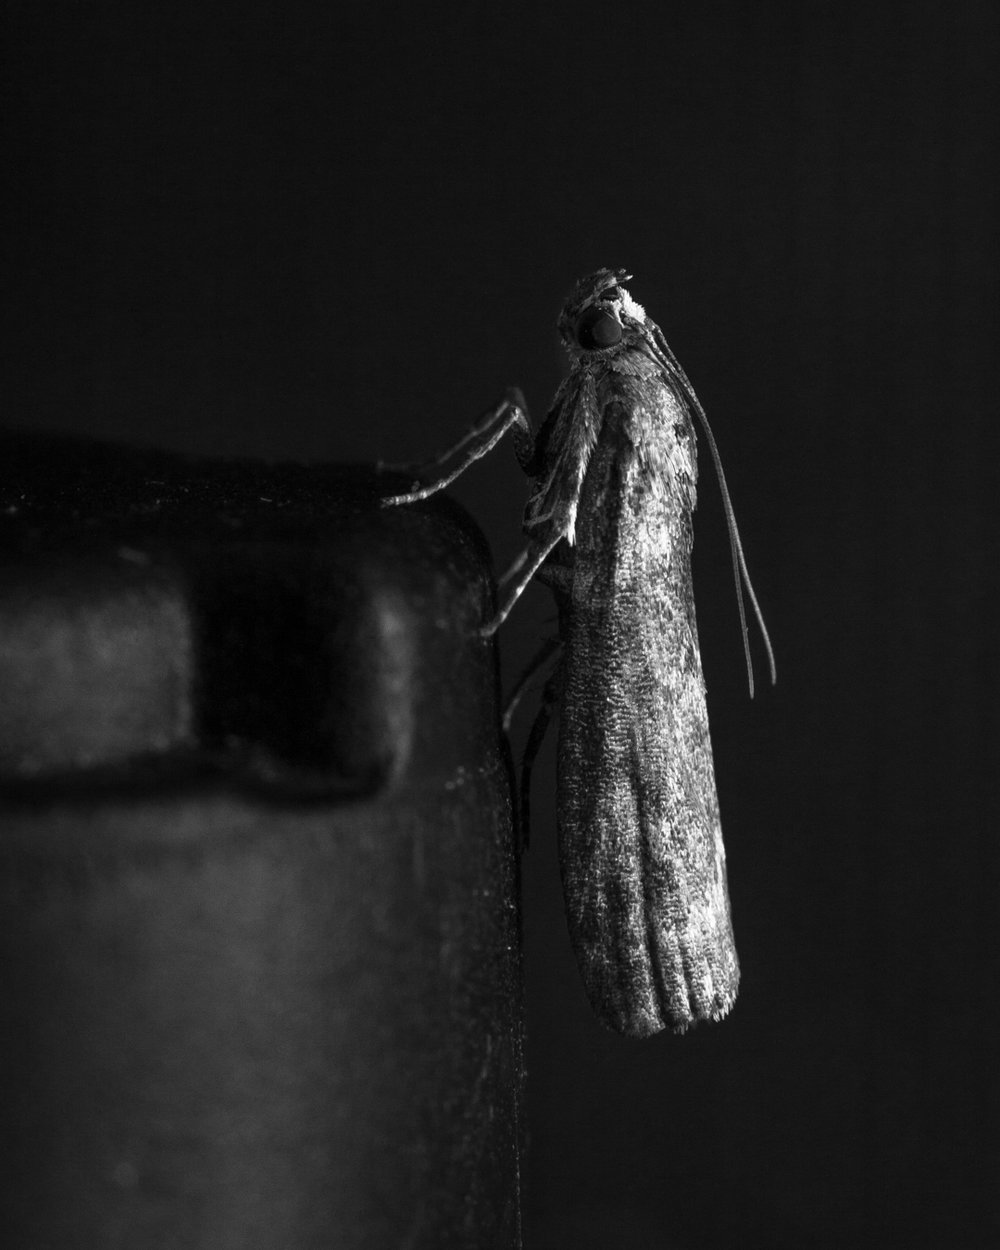 I underexposed this photo to black out the background, and to create more contrast between the moth and its surroundings